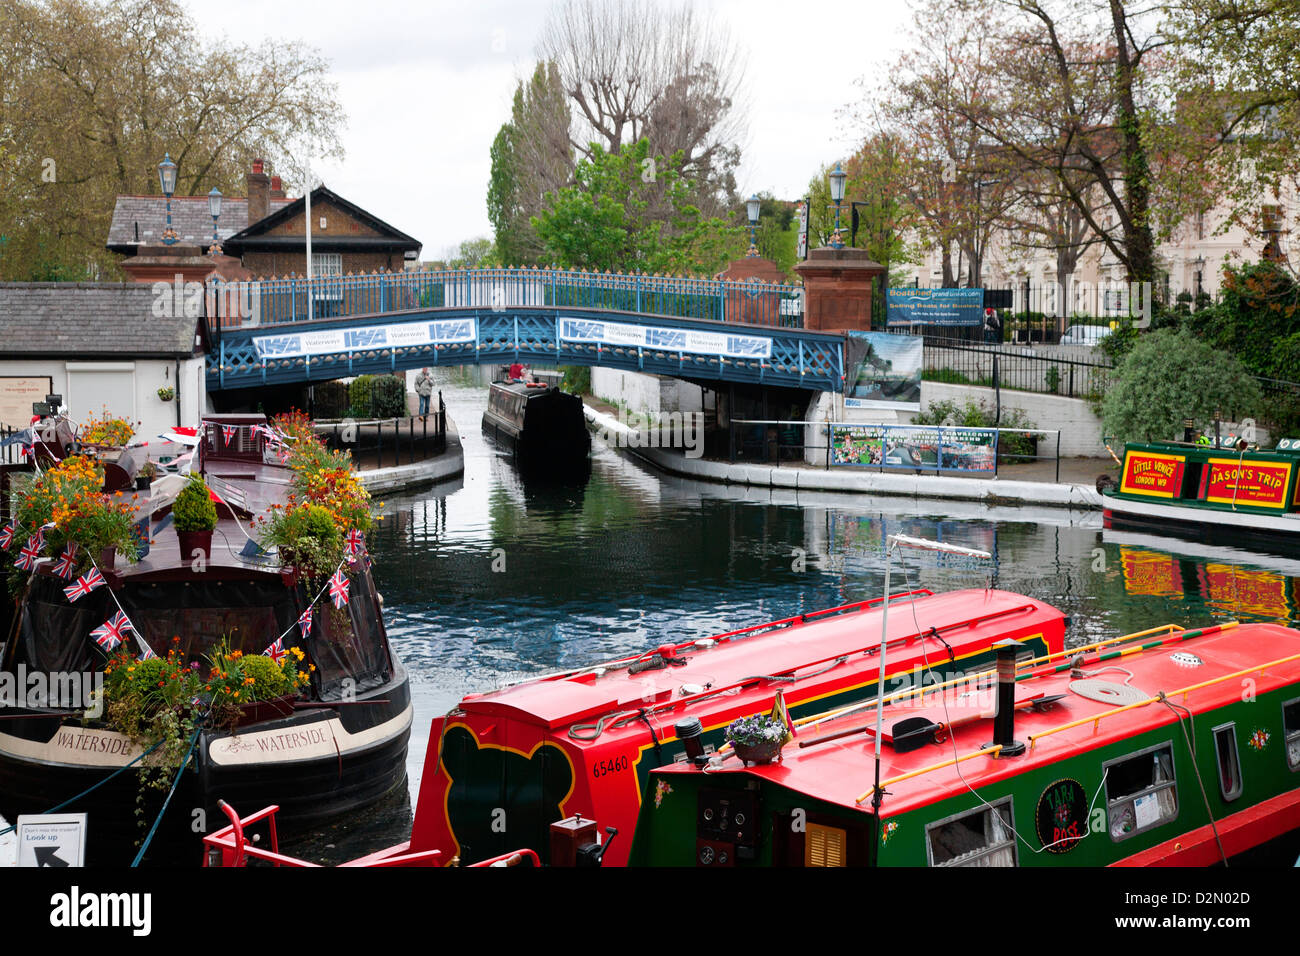 The Grand Union Canal showing the Westbourne Terrace Road Bridge, Little Venice, Maida Vale, London, England, UK - Stock Image